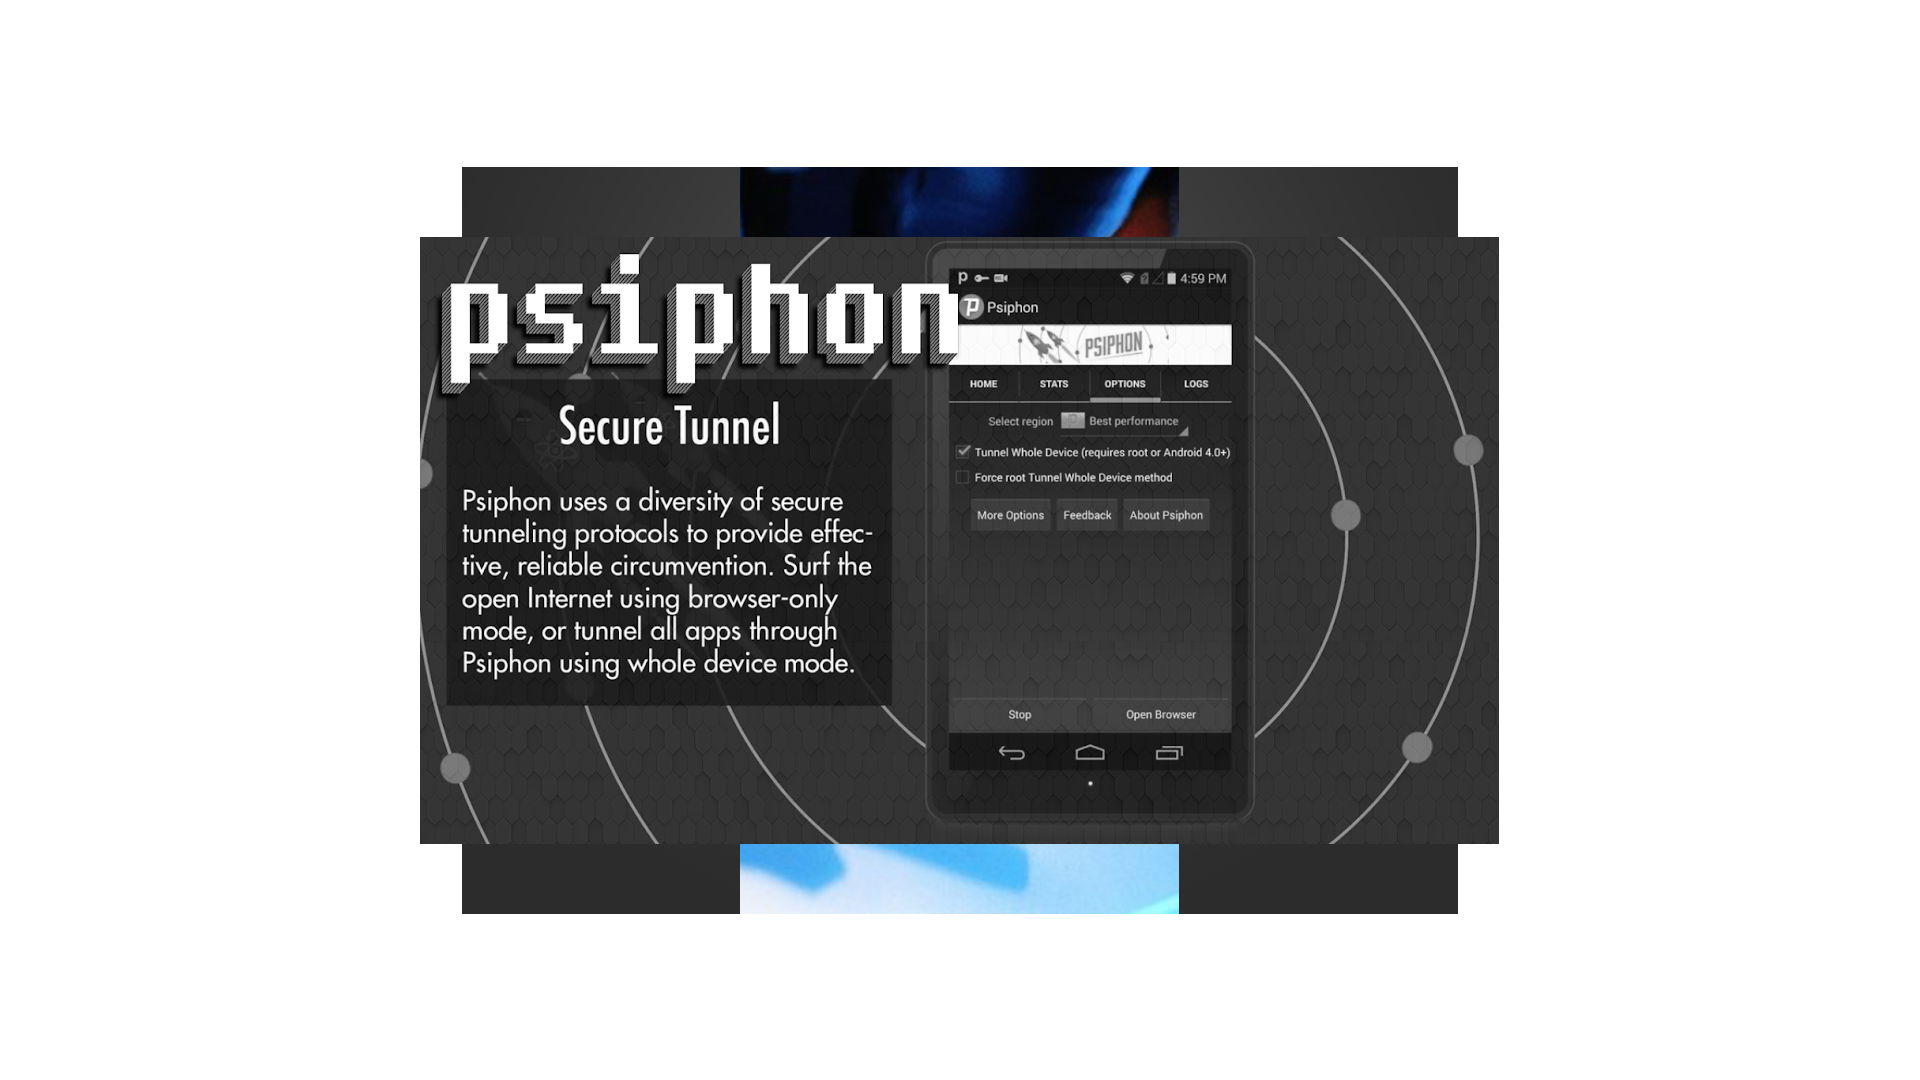 Amazon com: Psiphone Beta Pro Vpn: Appstore for Android